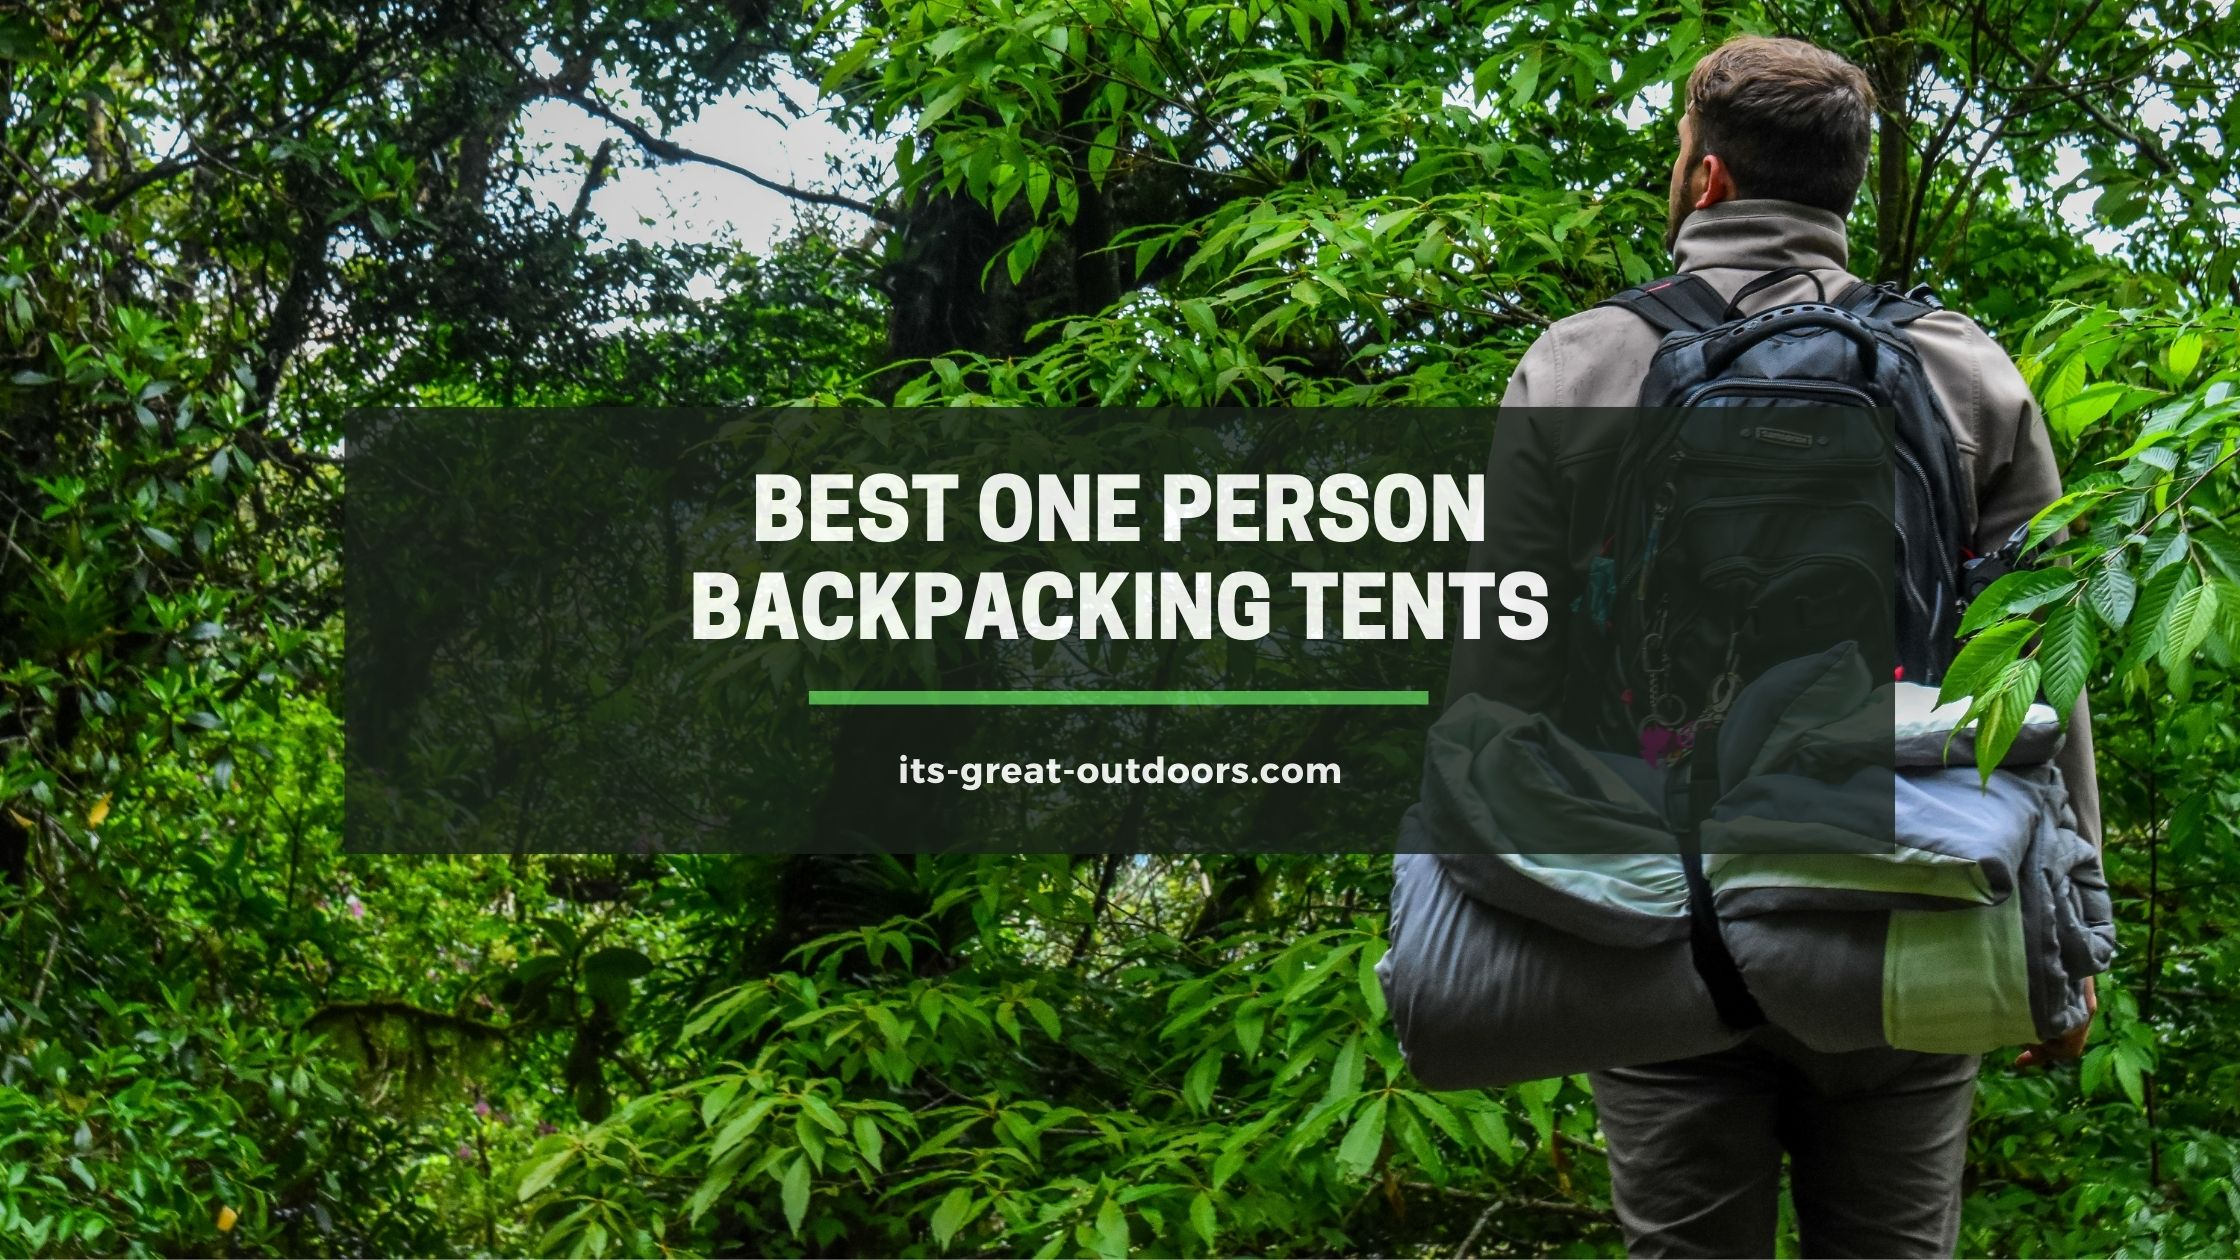 Best One Person Backpacking Tents